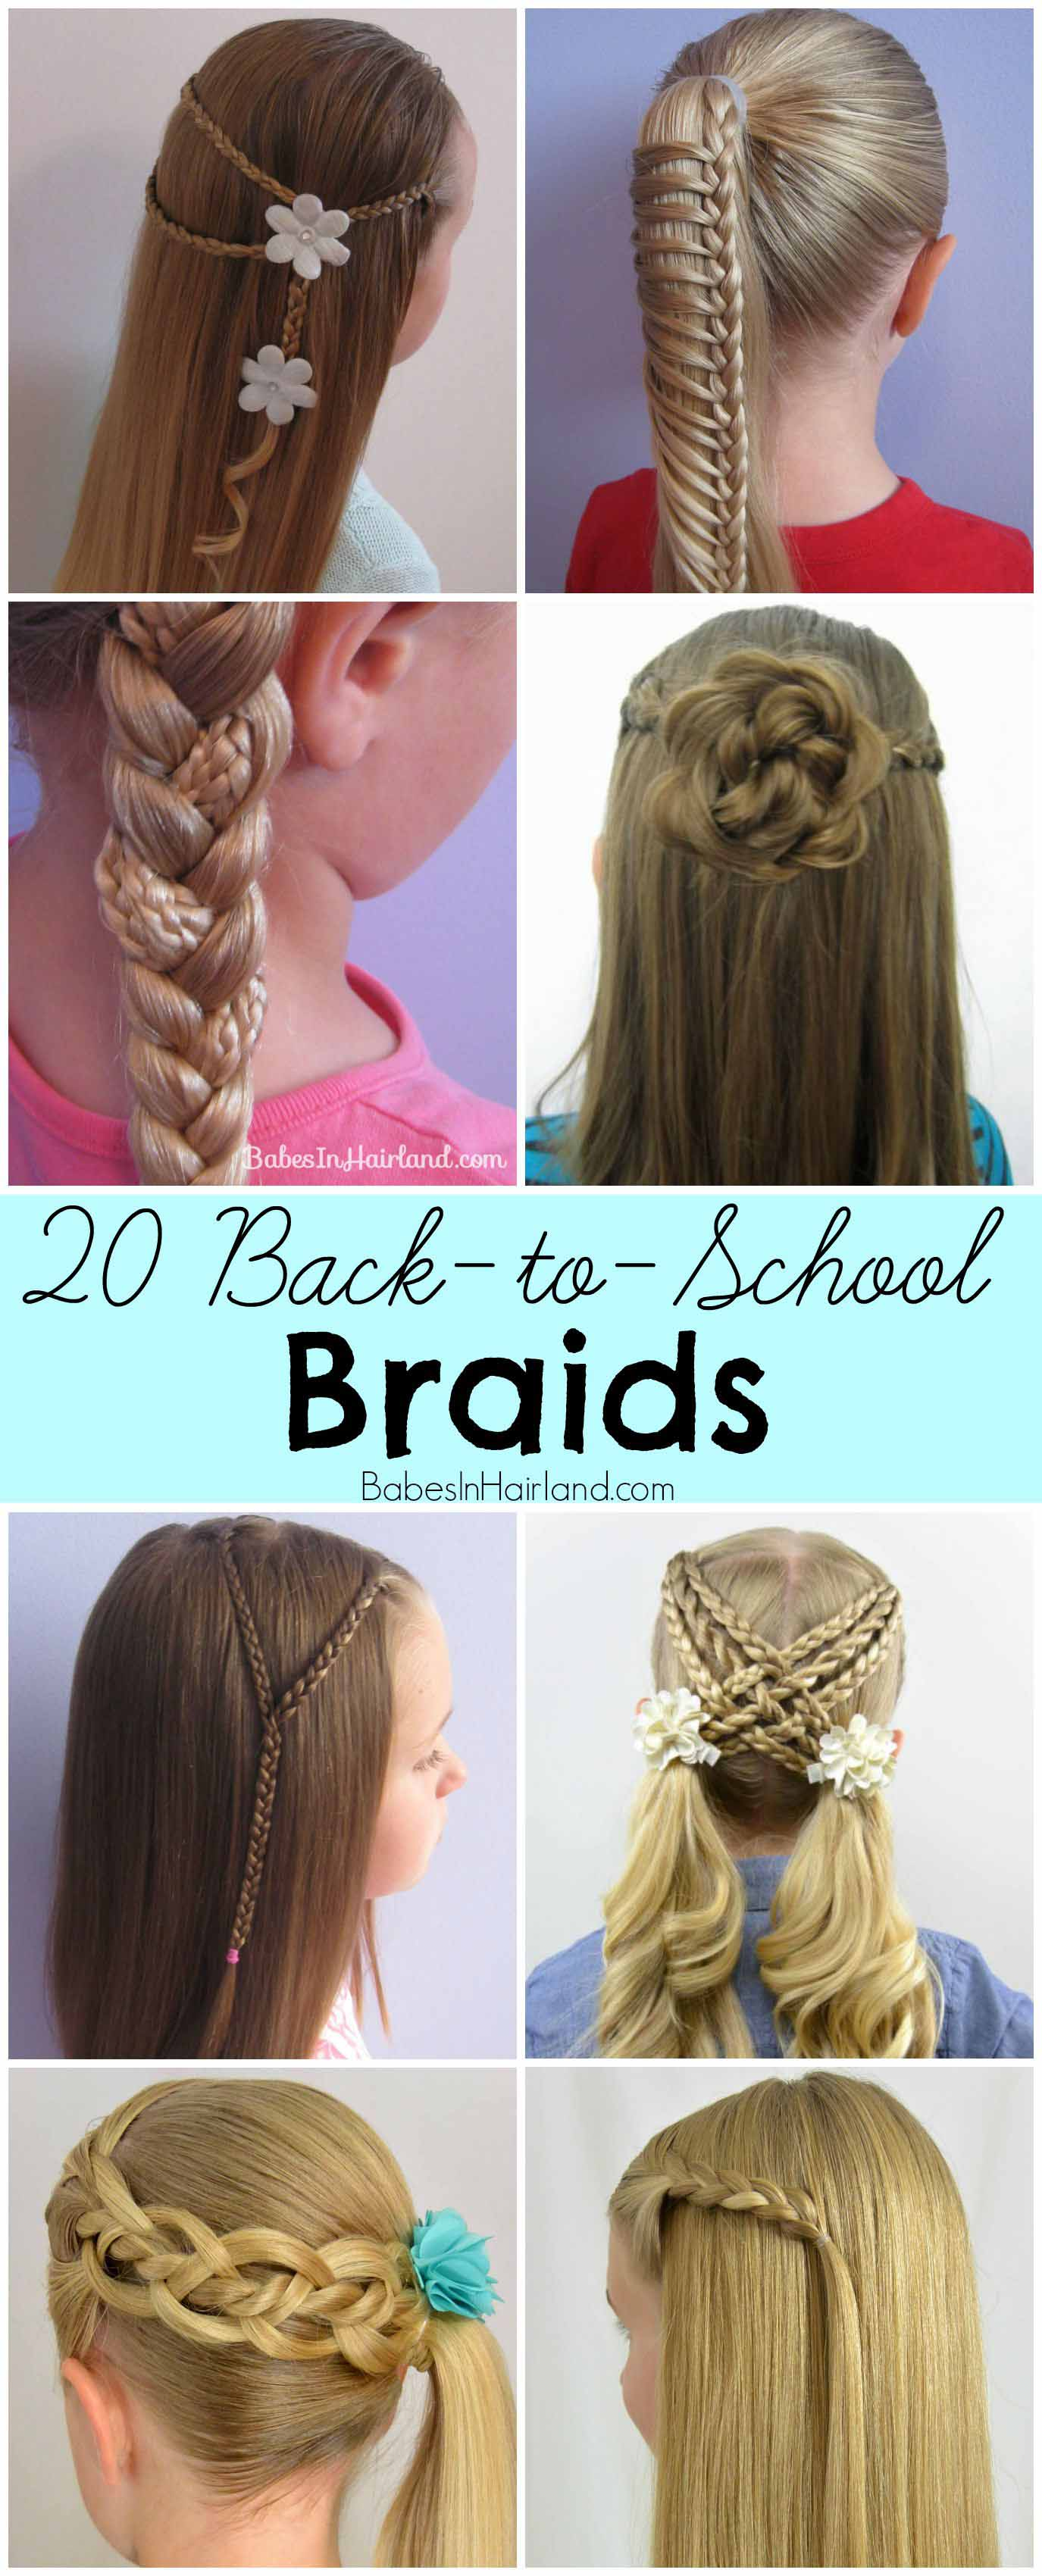 20 Back-to-School Braids - Babes In Hairland